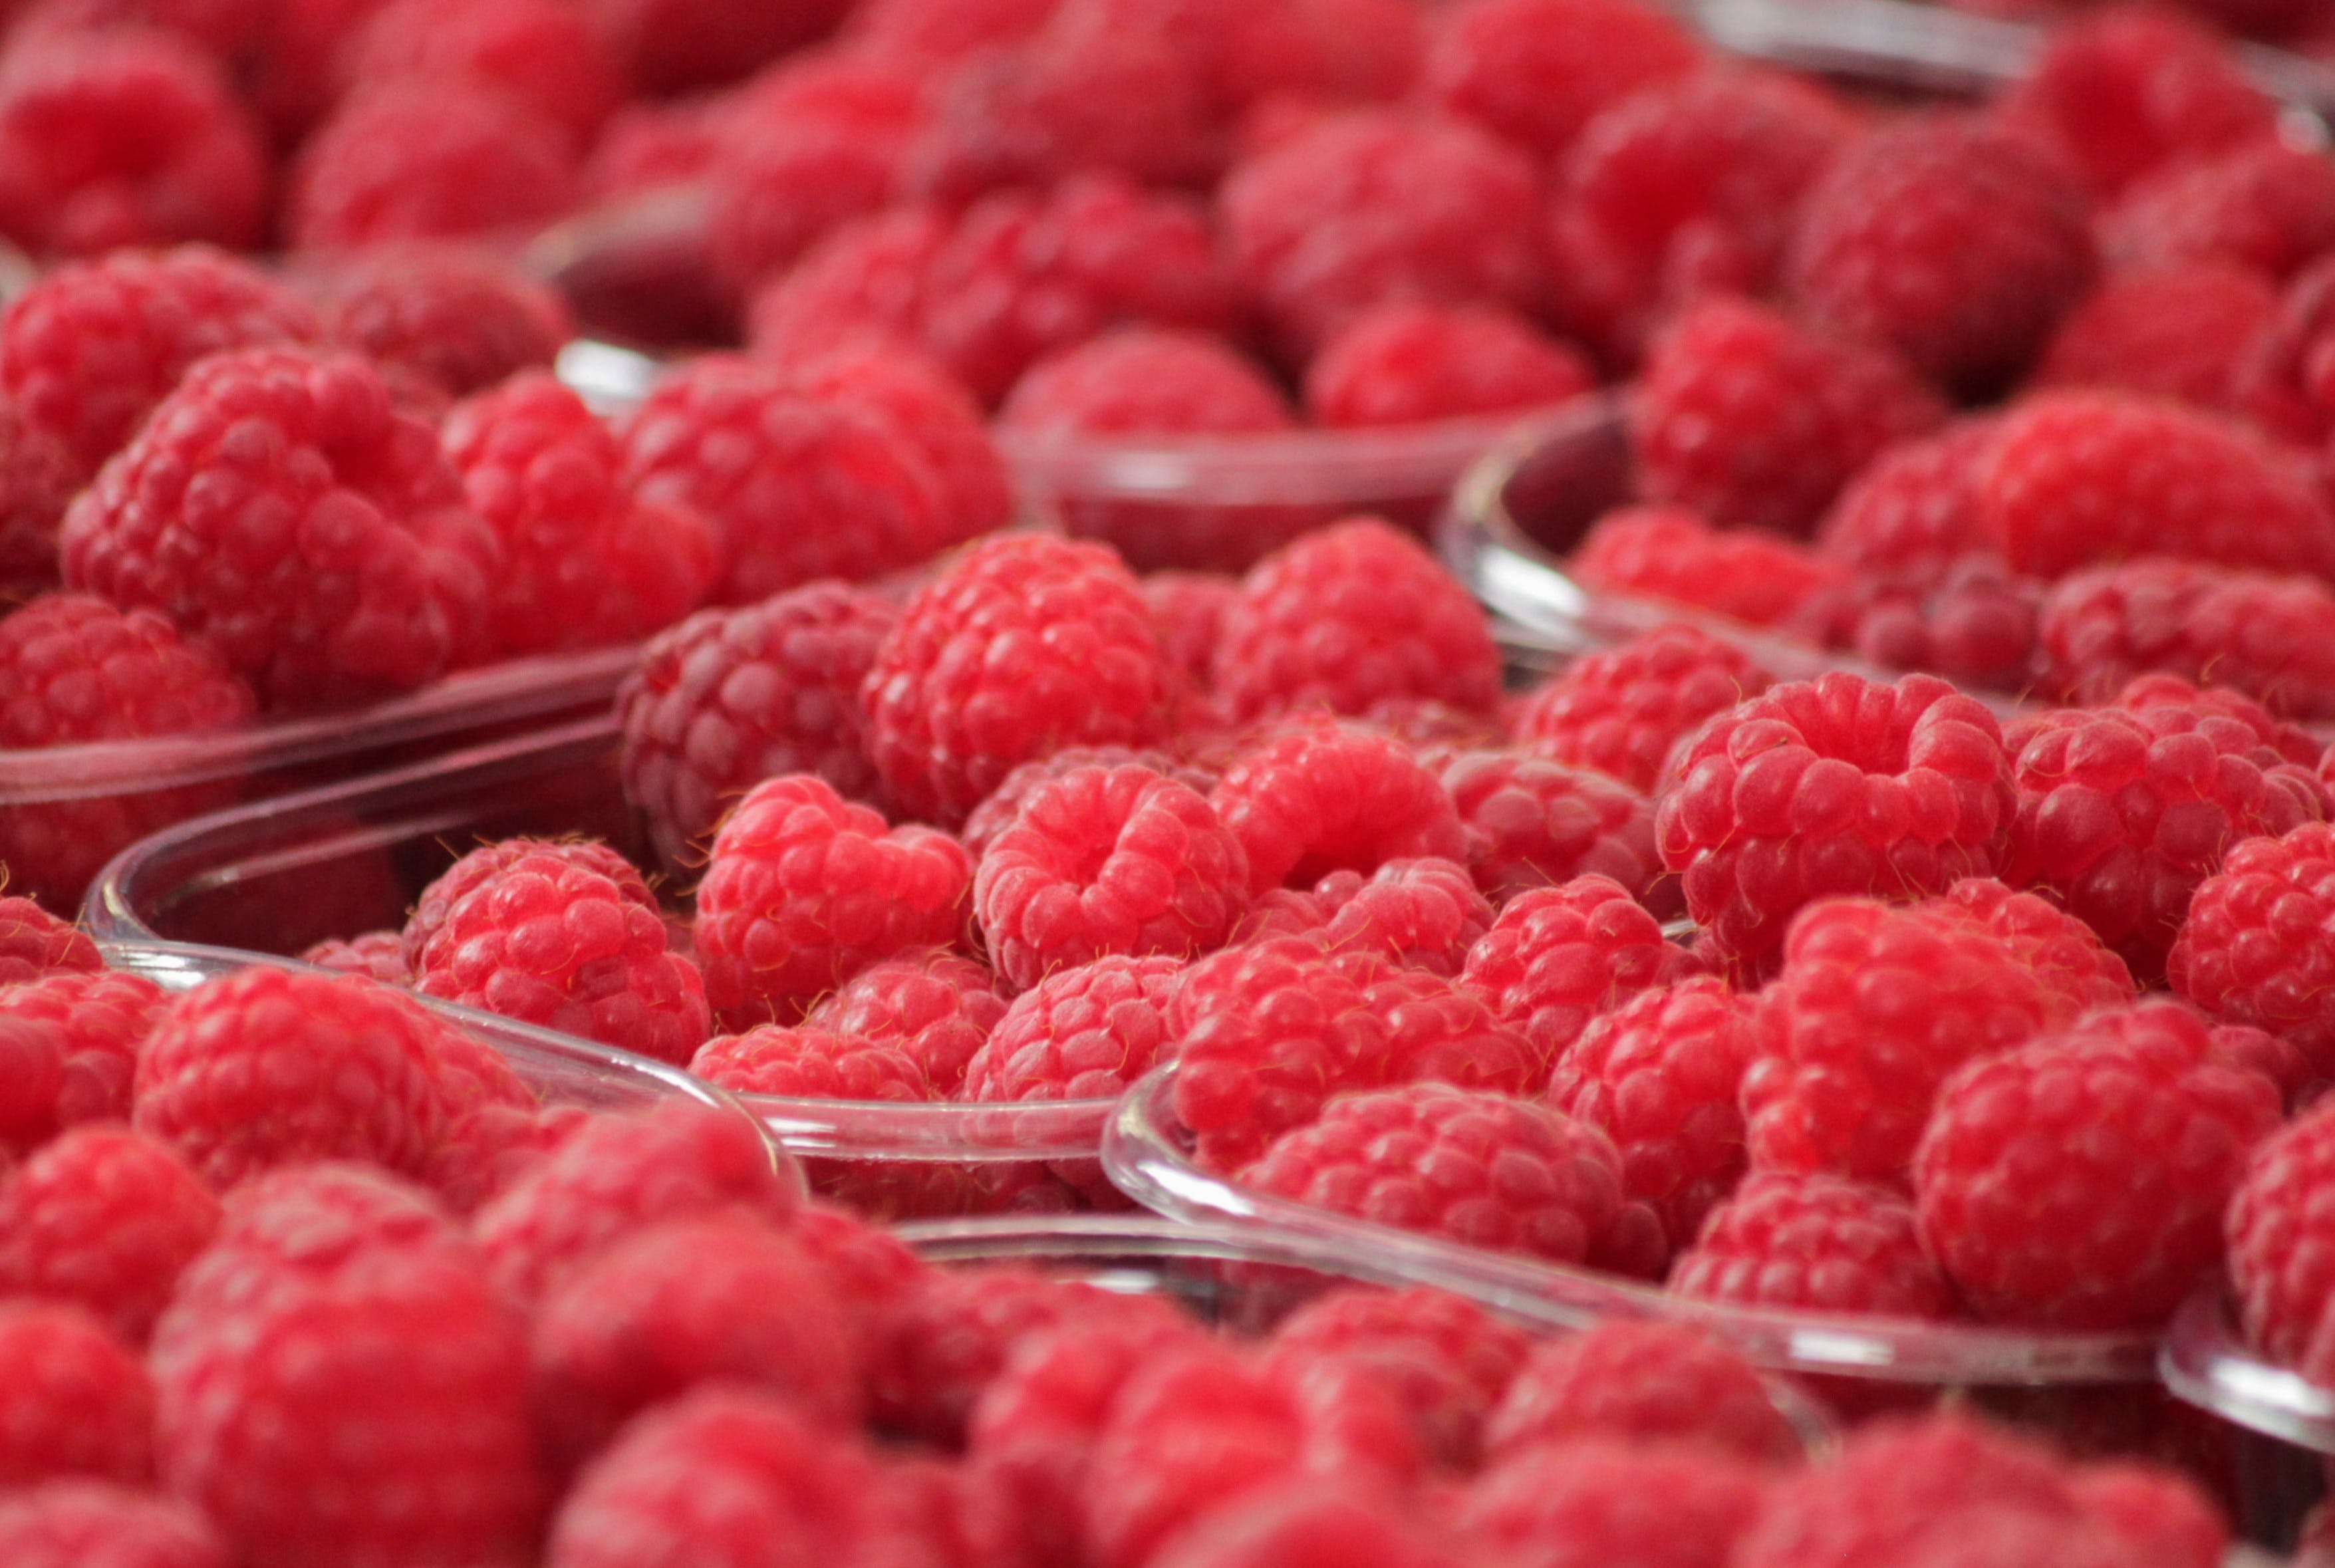 berries, bunch, close-up